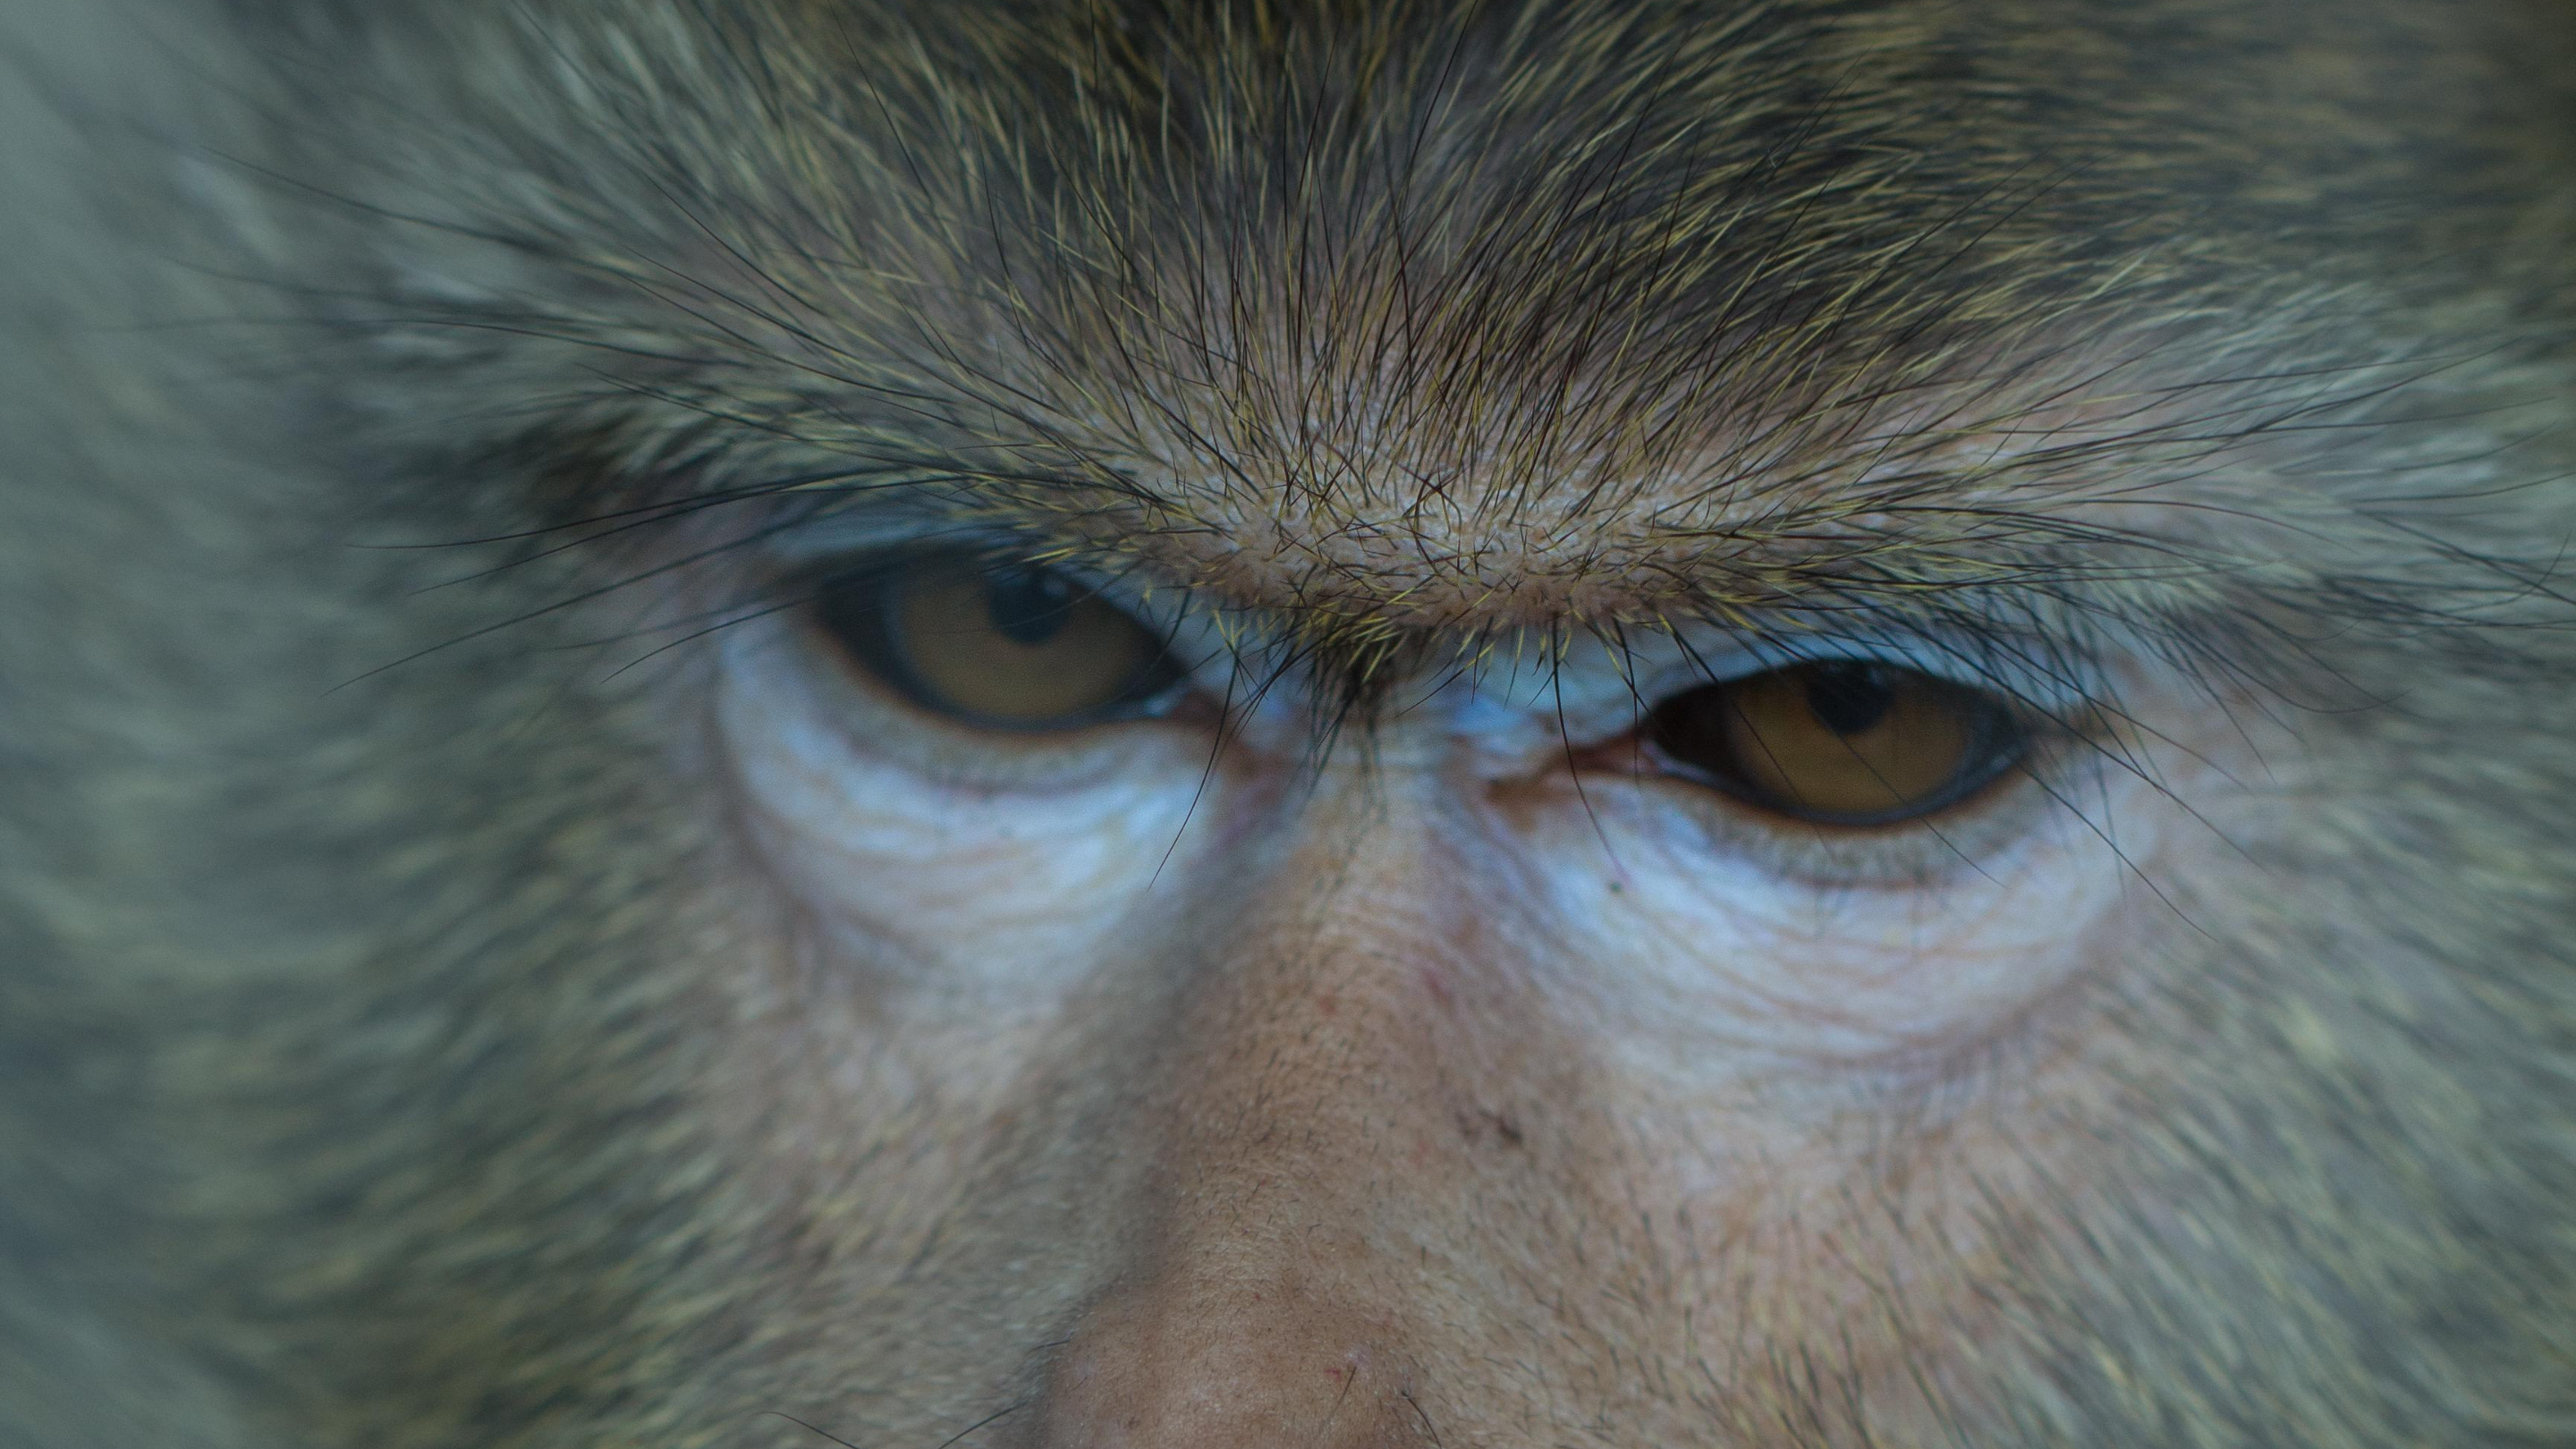 A close-up of a monkey's sad, downturned eyes